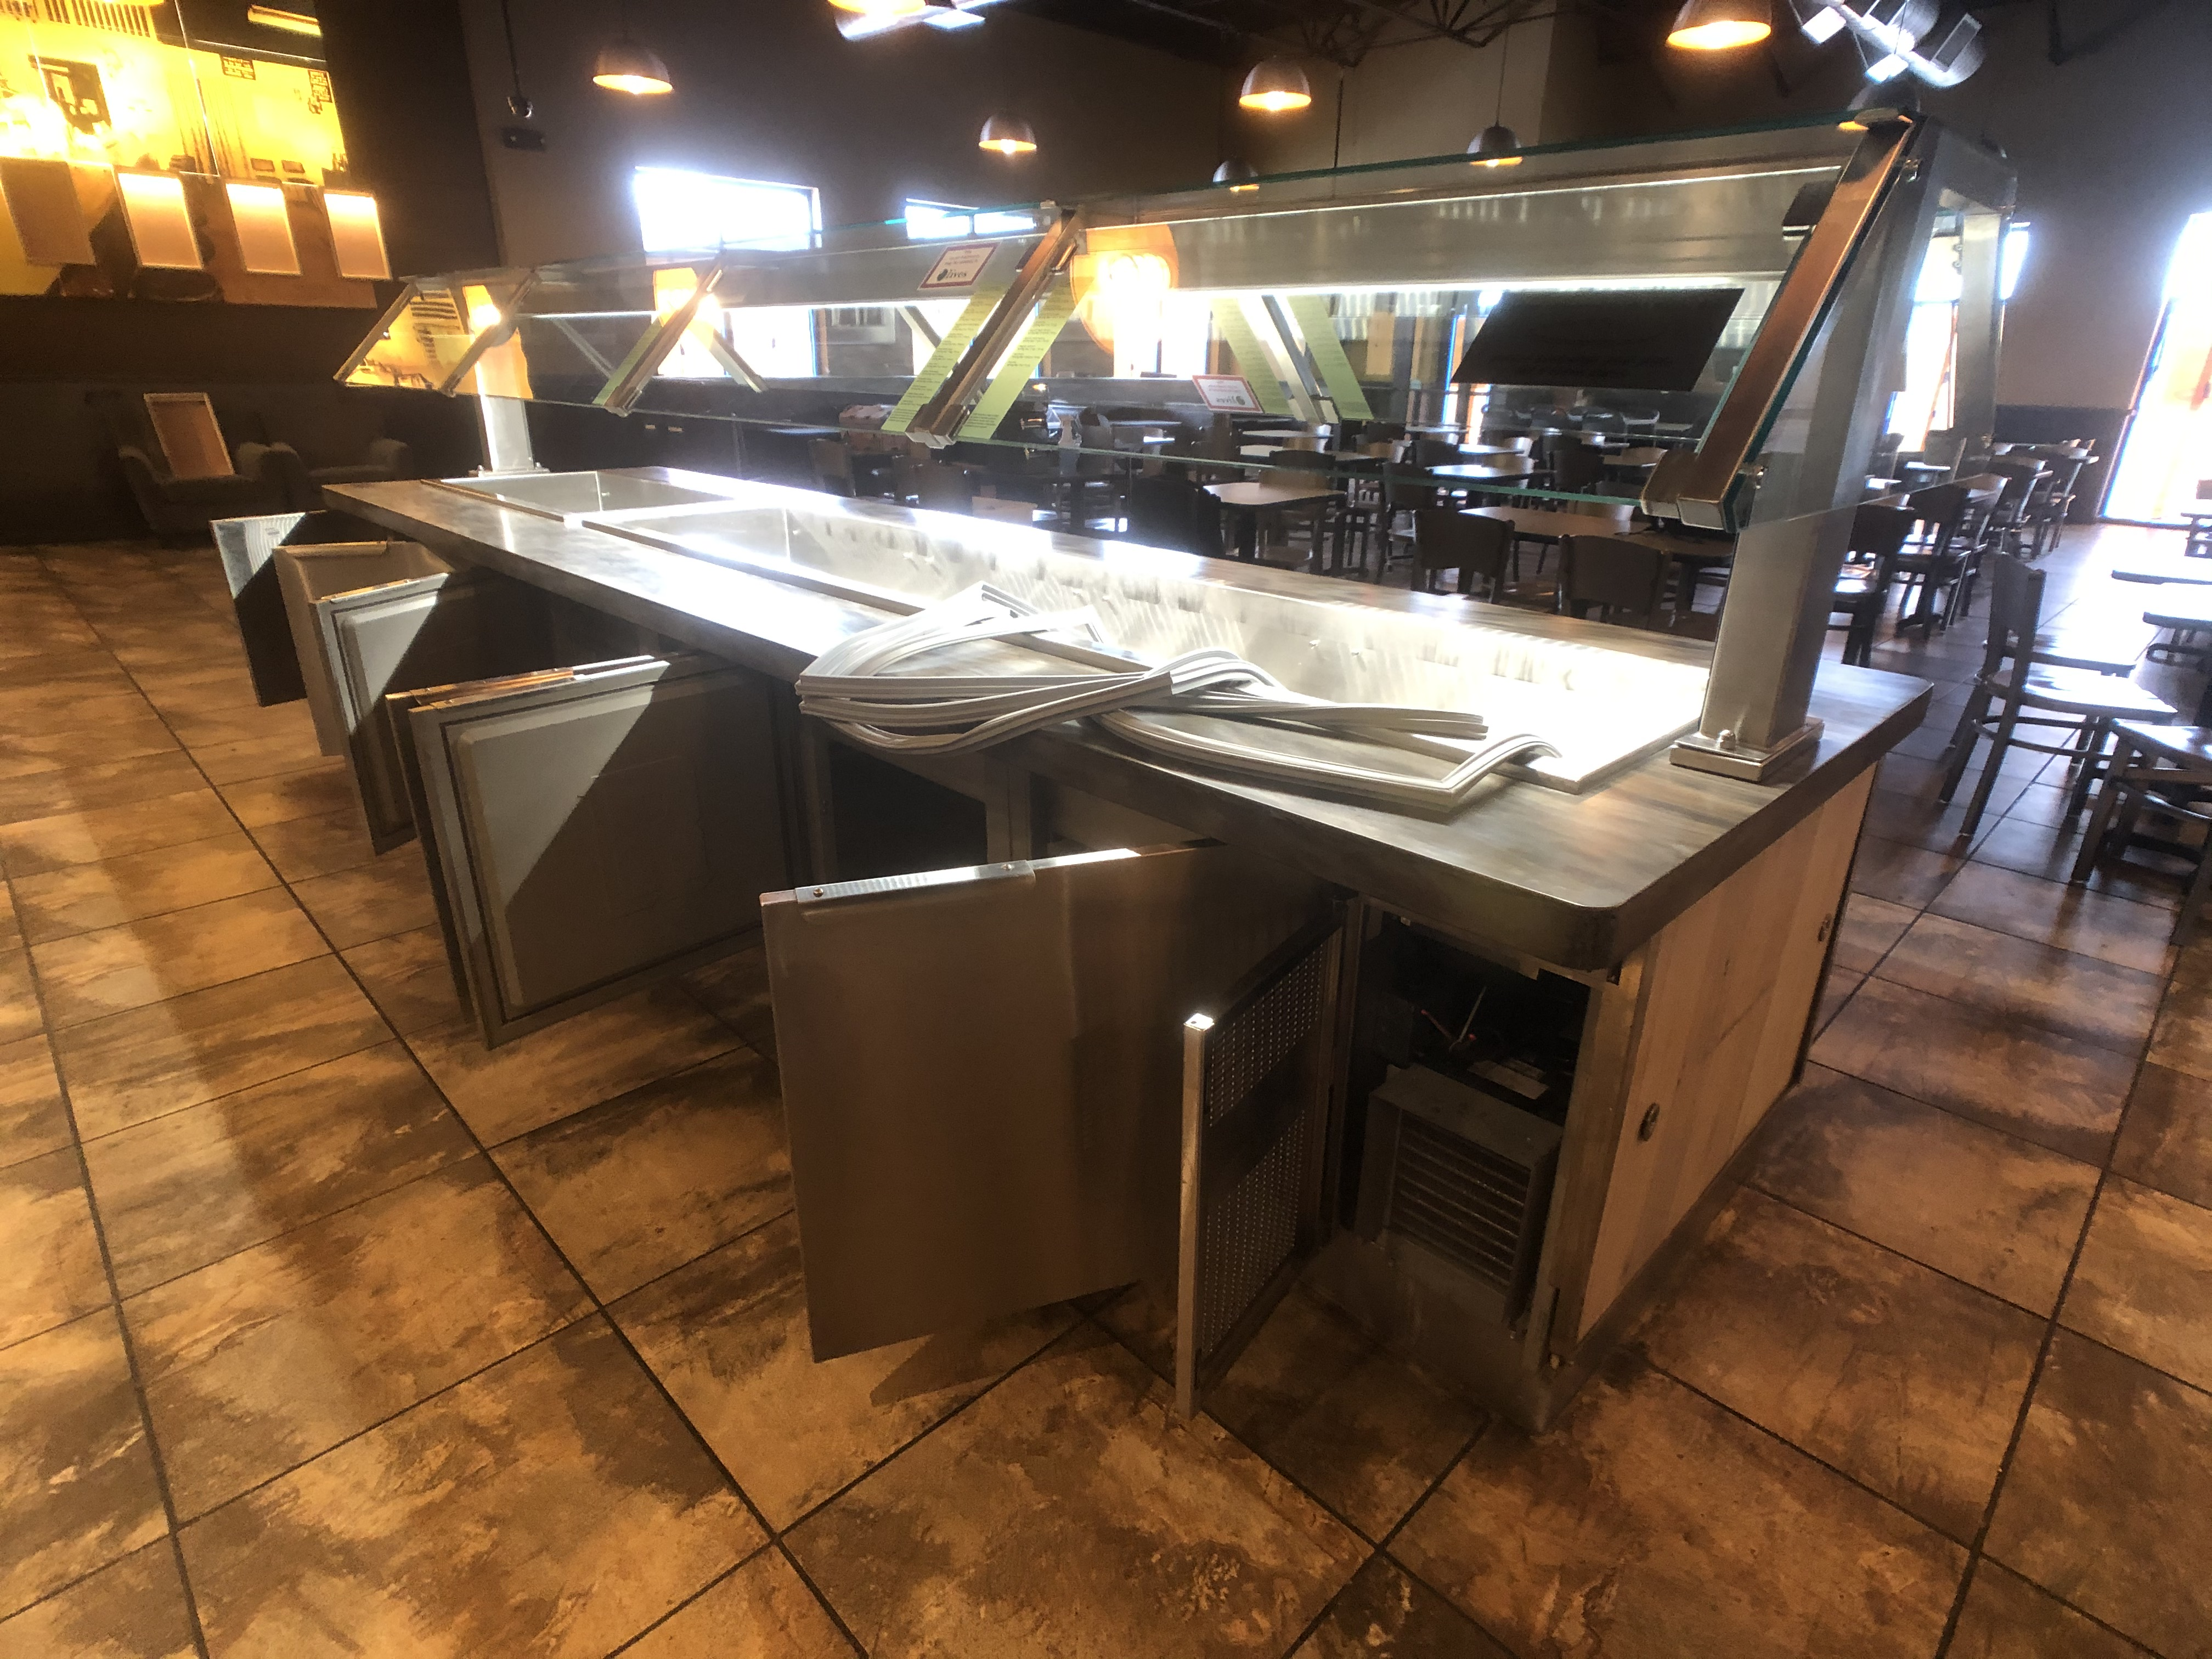 Randell Approx. 15' L x 4' W Refrigerated Buffet Table with Overhead Light, Work-Top Refrigerator - Image 3 of 6